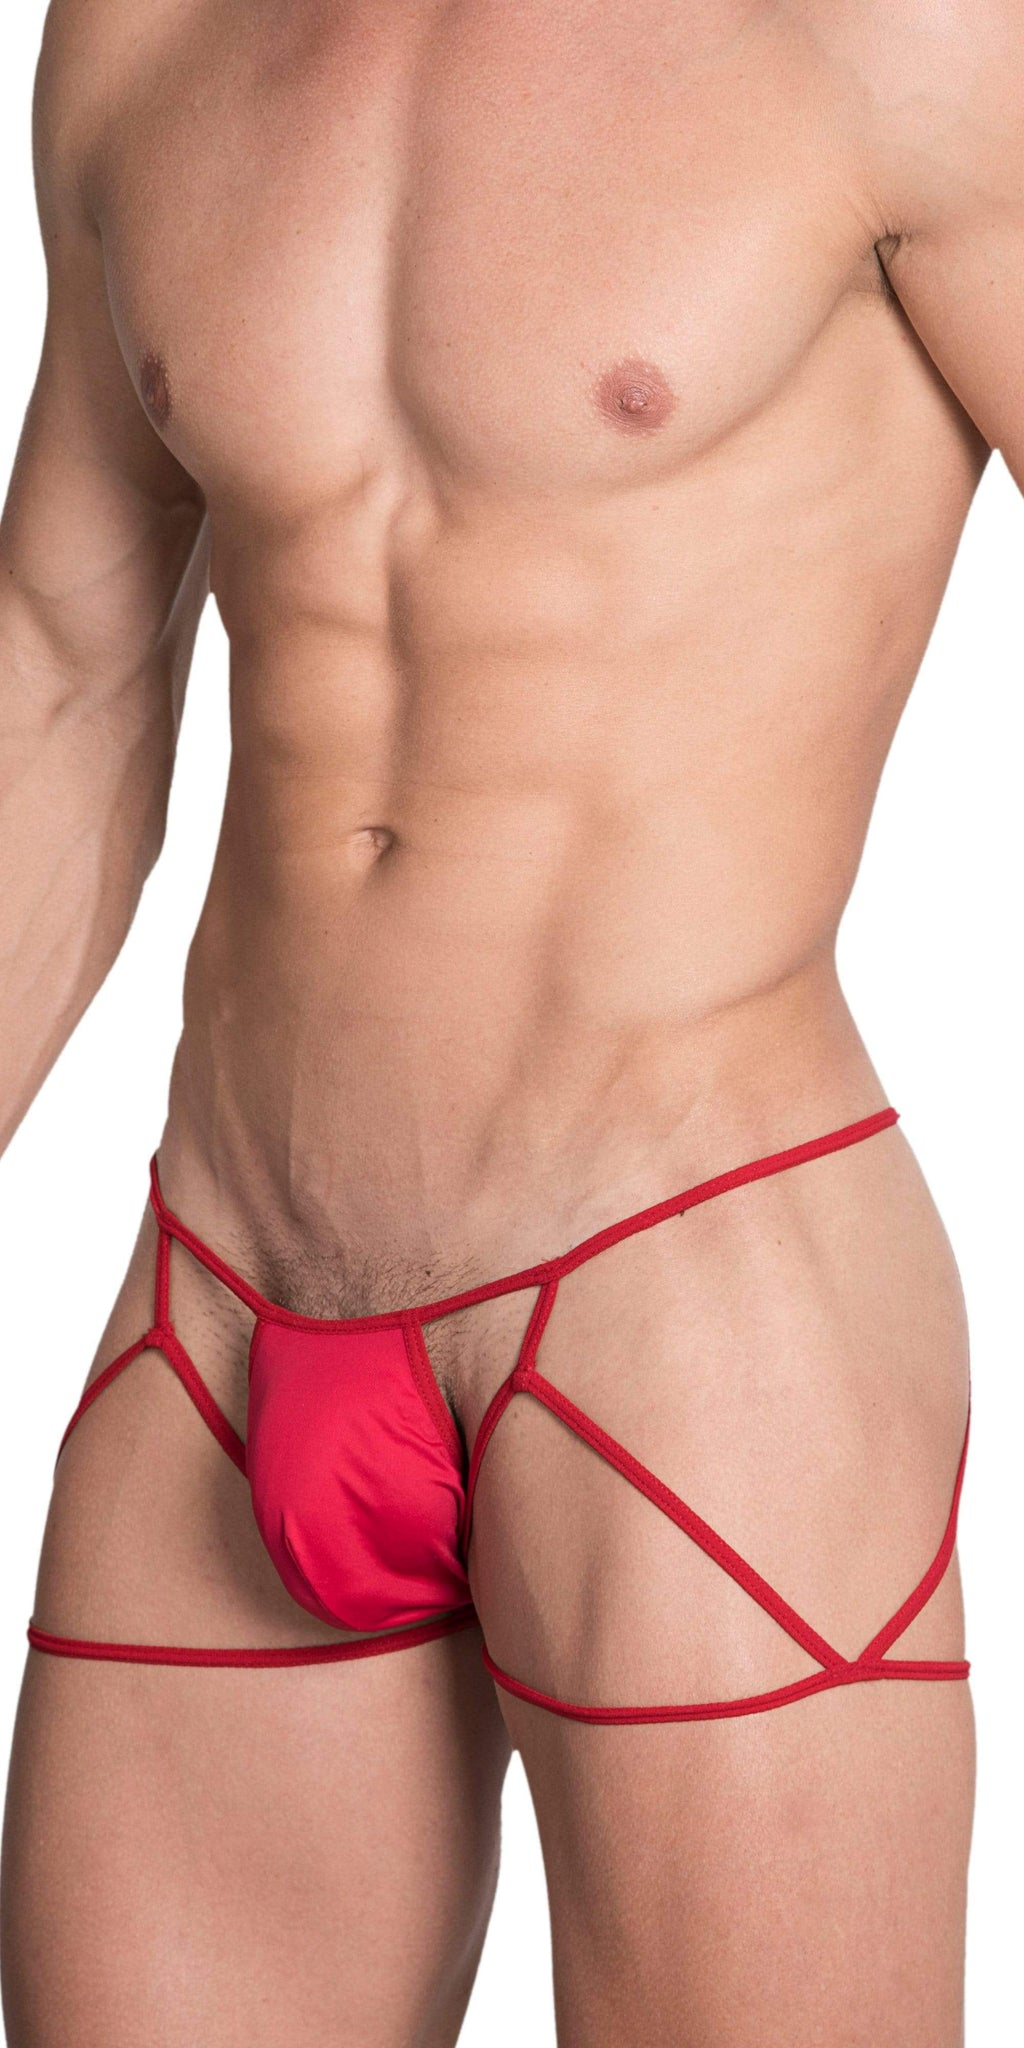 HIDDEN 971 Jockstrap-Thong In Red